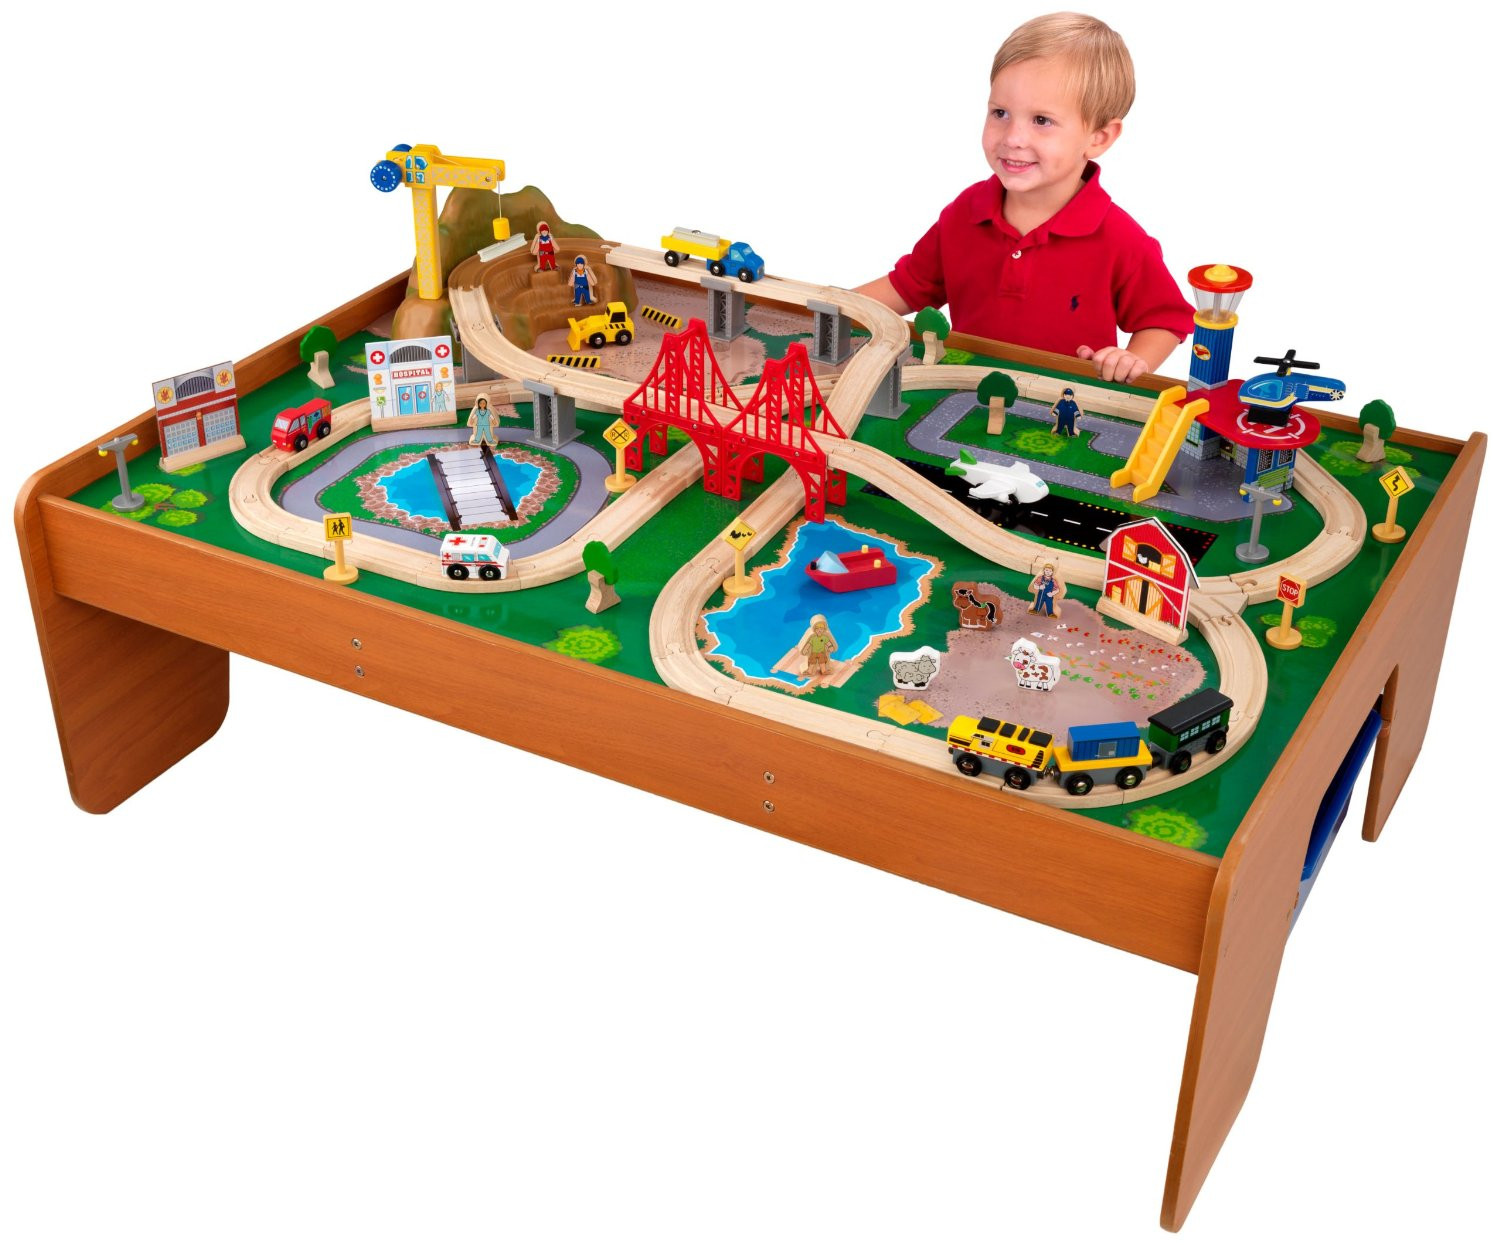 5 Year Old Boy Birthday Gift  The Most FUN Birthday and Christmas Gifts for 5 Year Old Boys